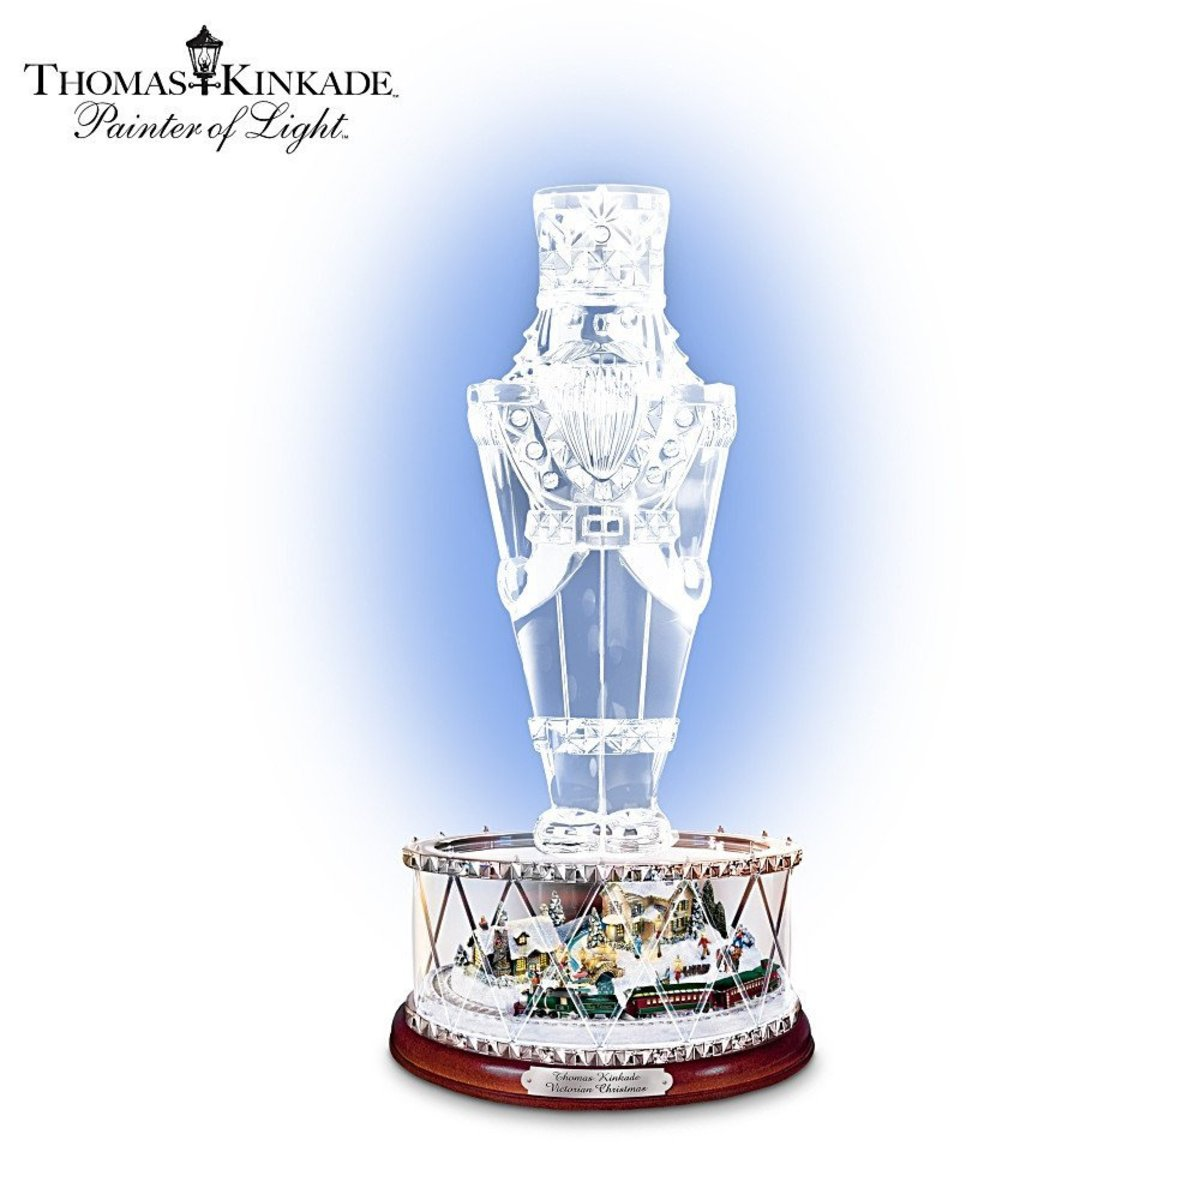 The nutcracker stands on top of a crystal drum.